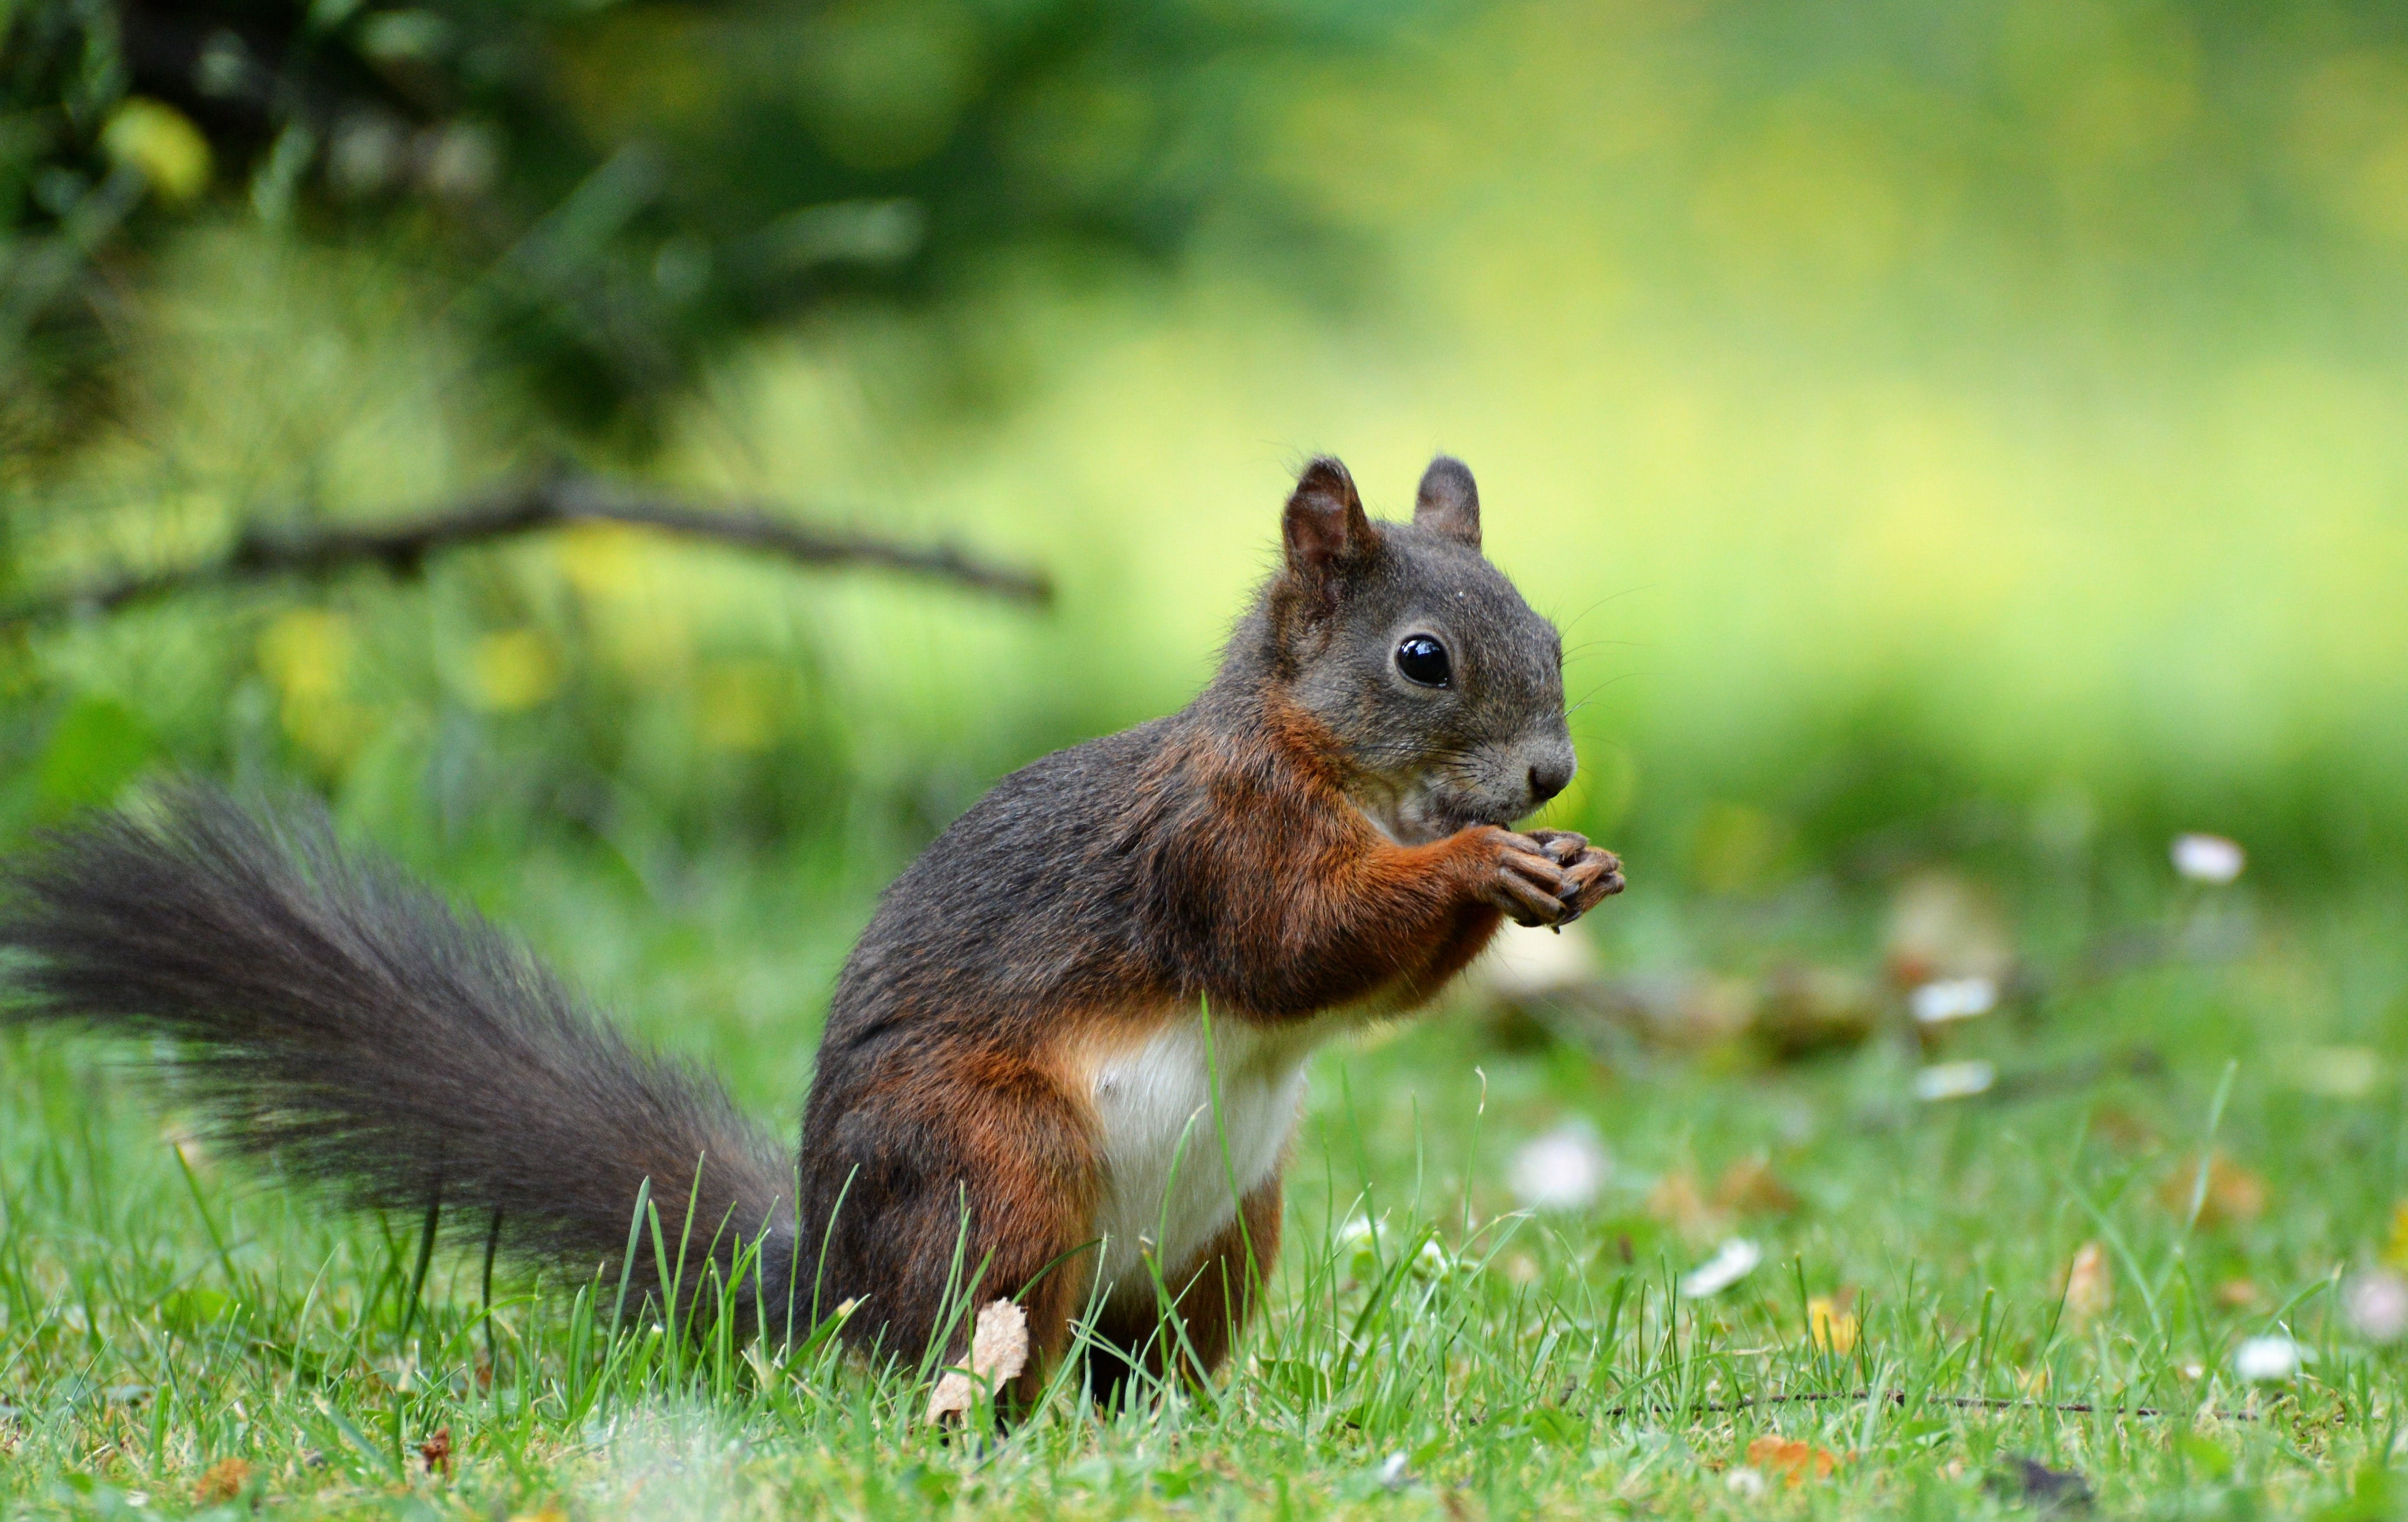 Red Squirrel on Grass Field